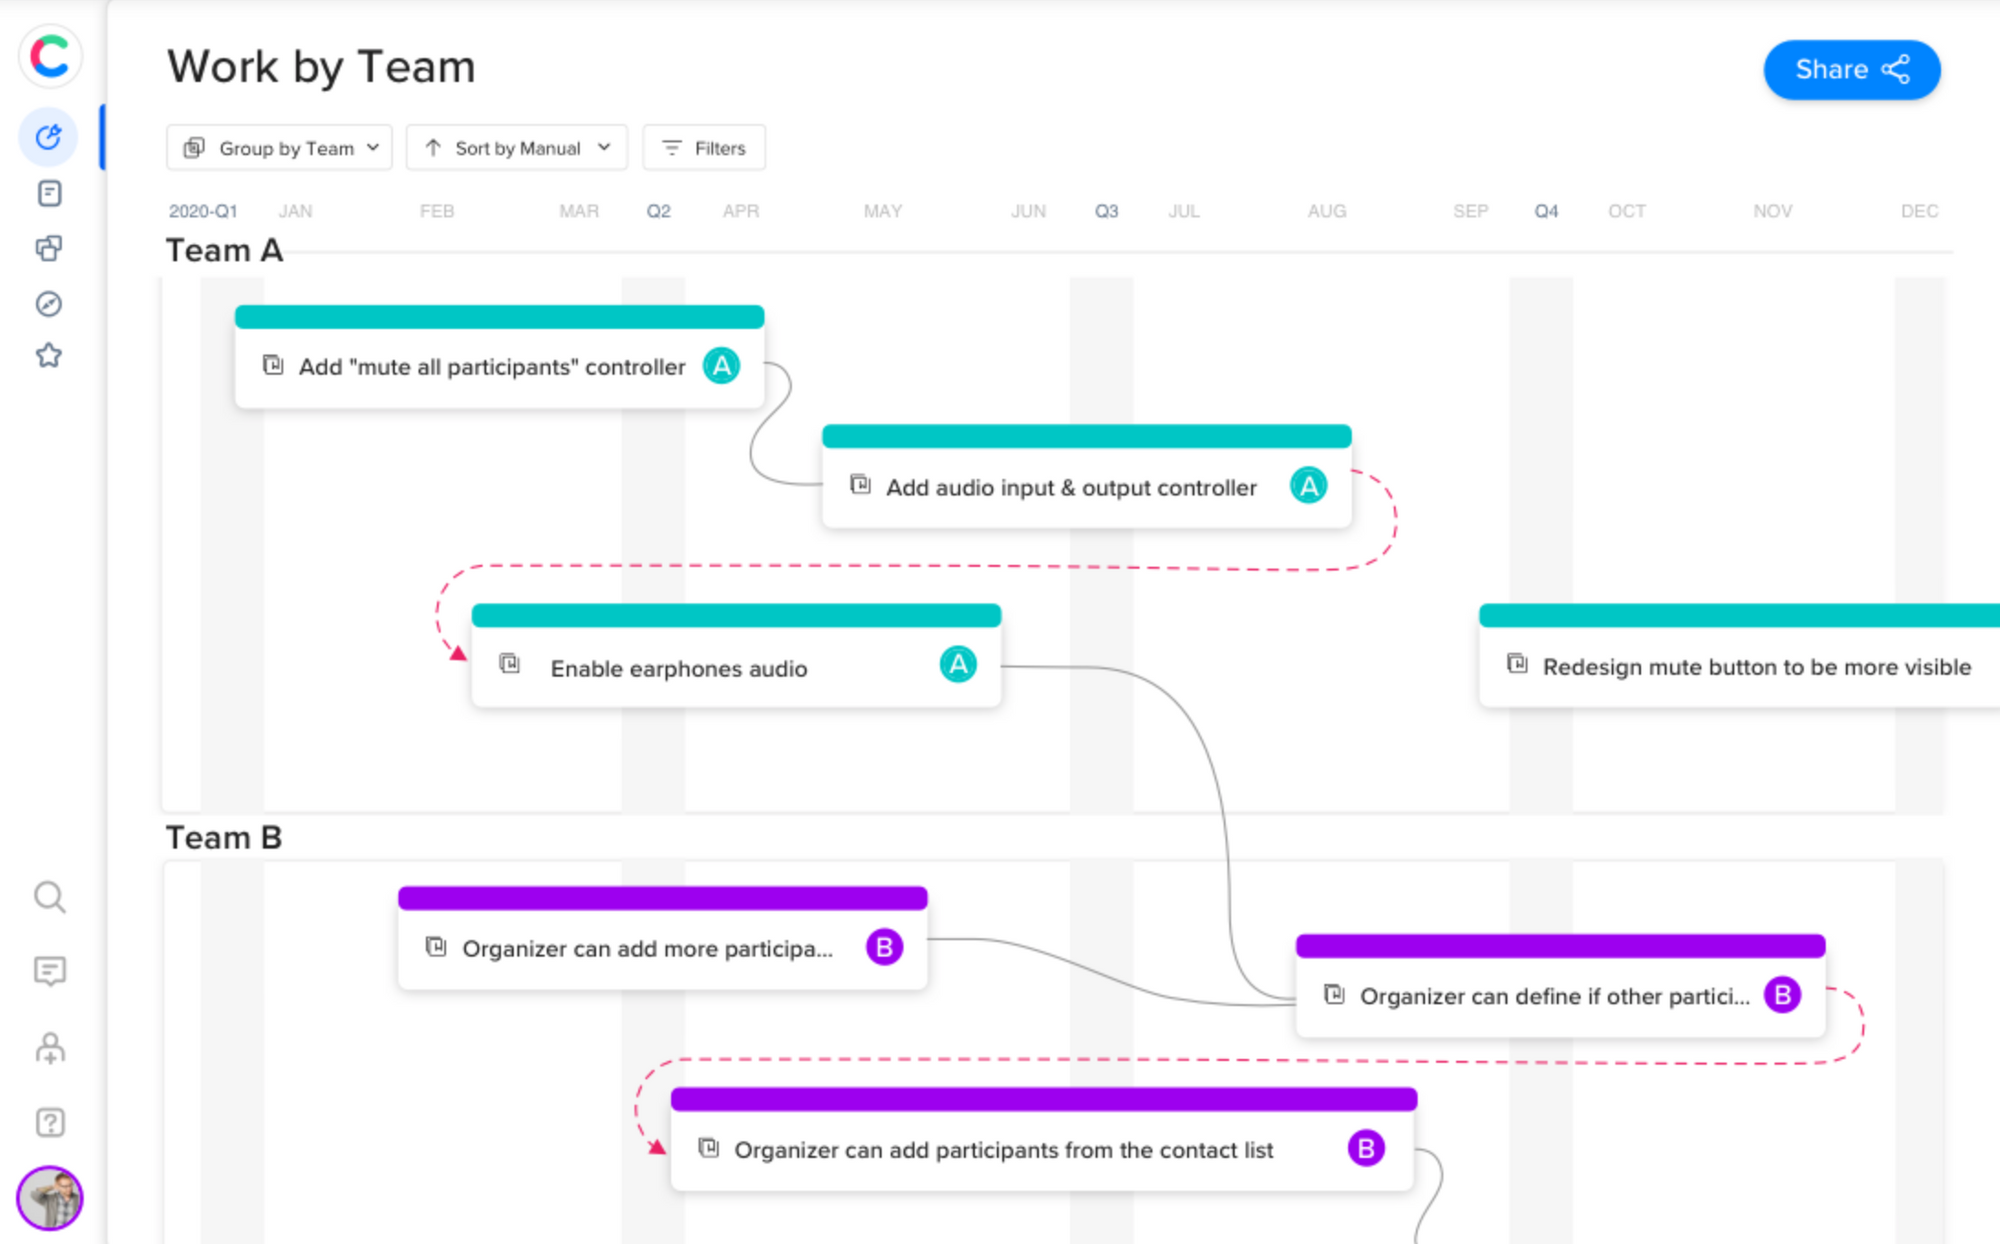 Product roadmap in Craft product management tool